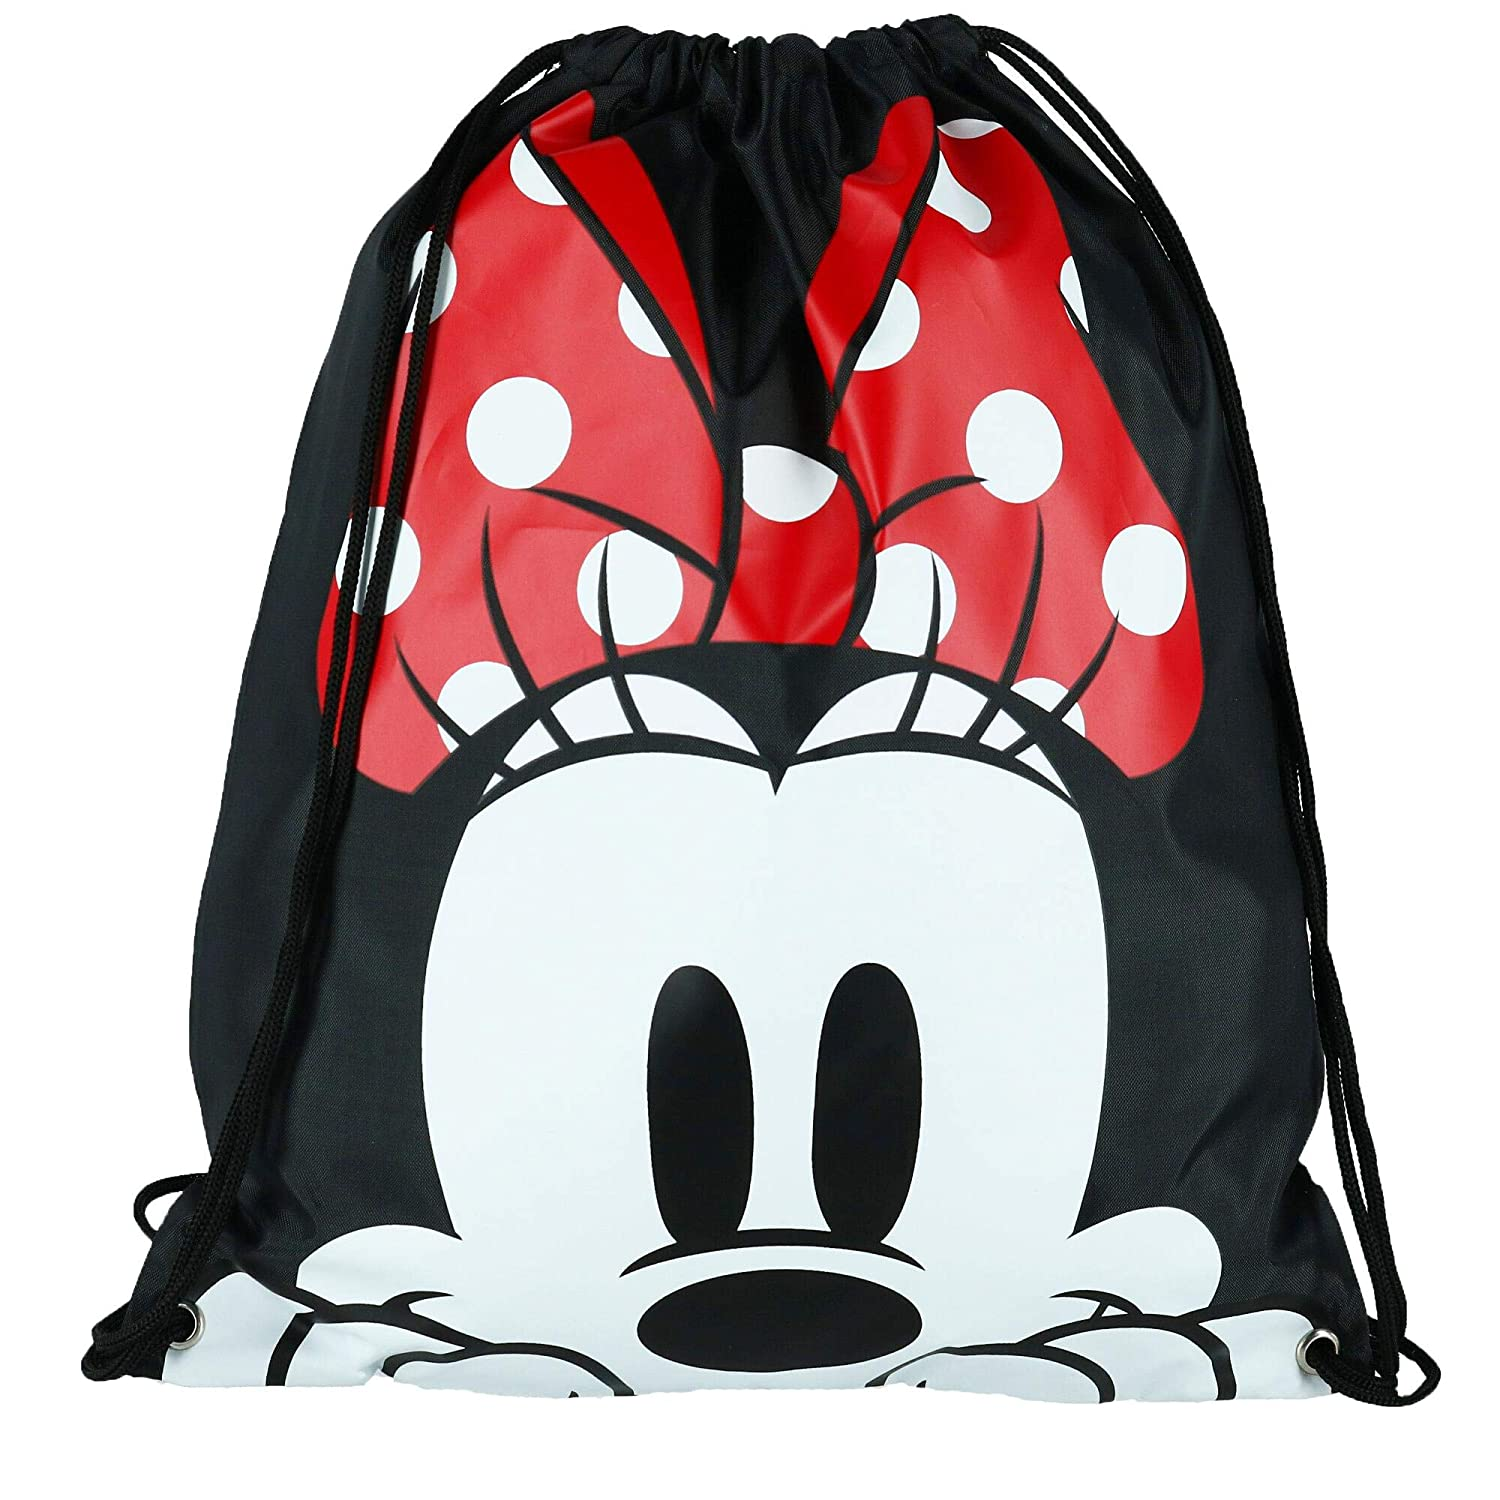 Black Disney Minnie Mouse Face Drawstring Tote Backpack